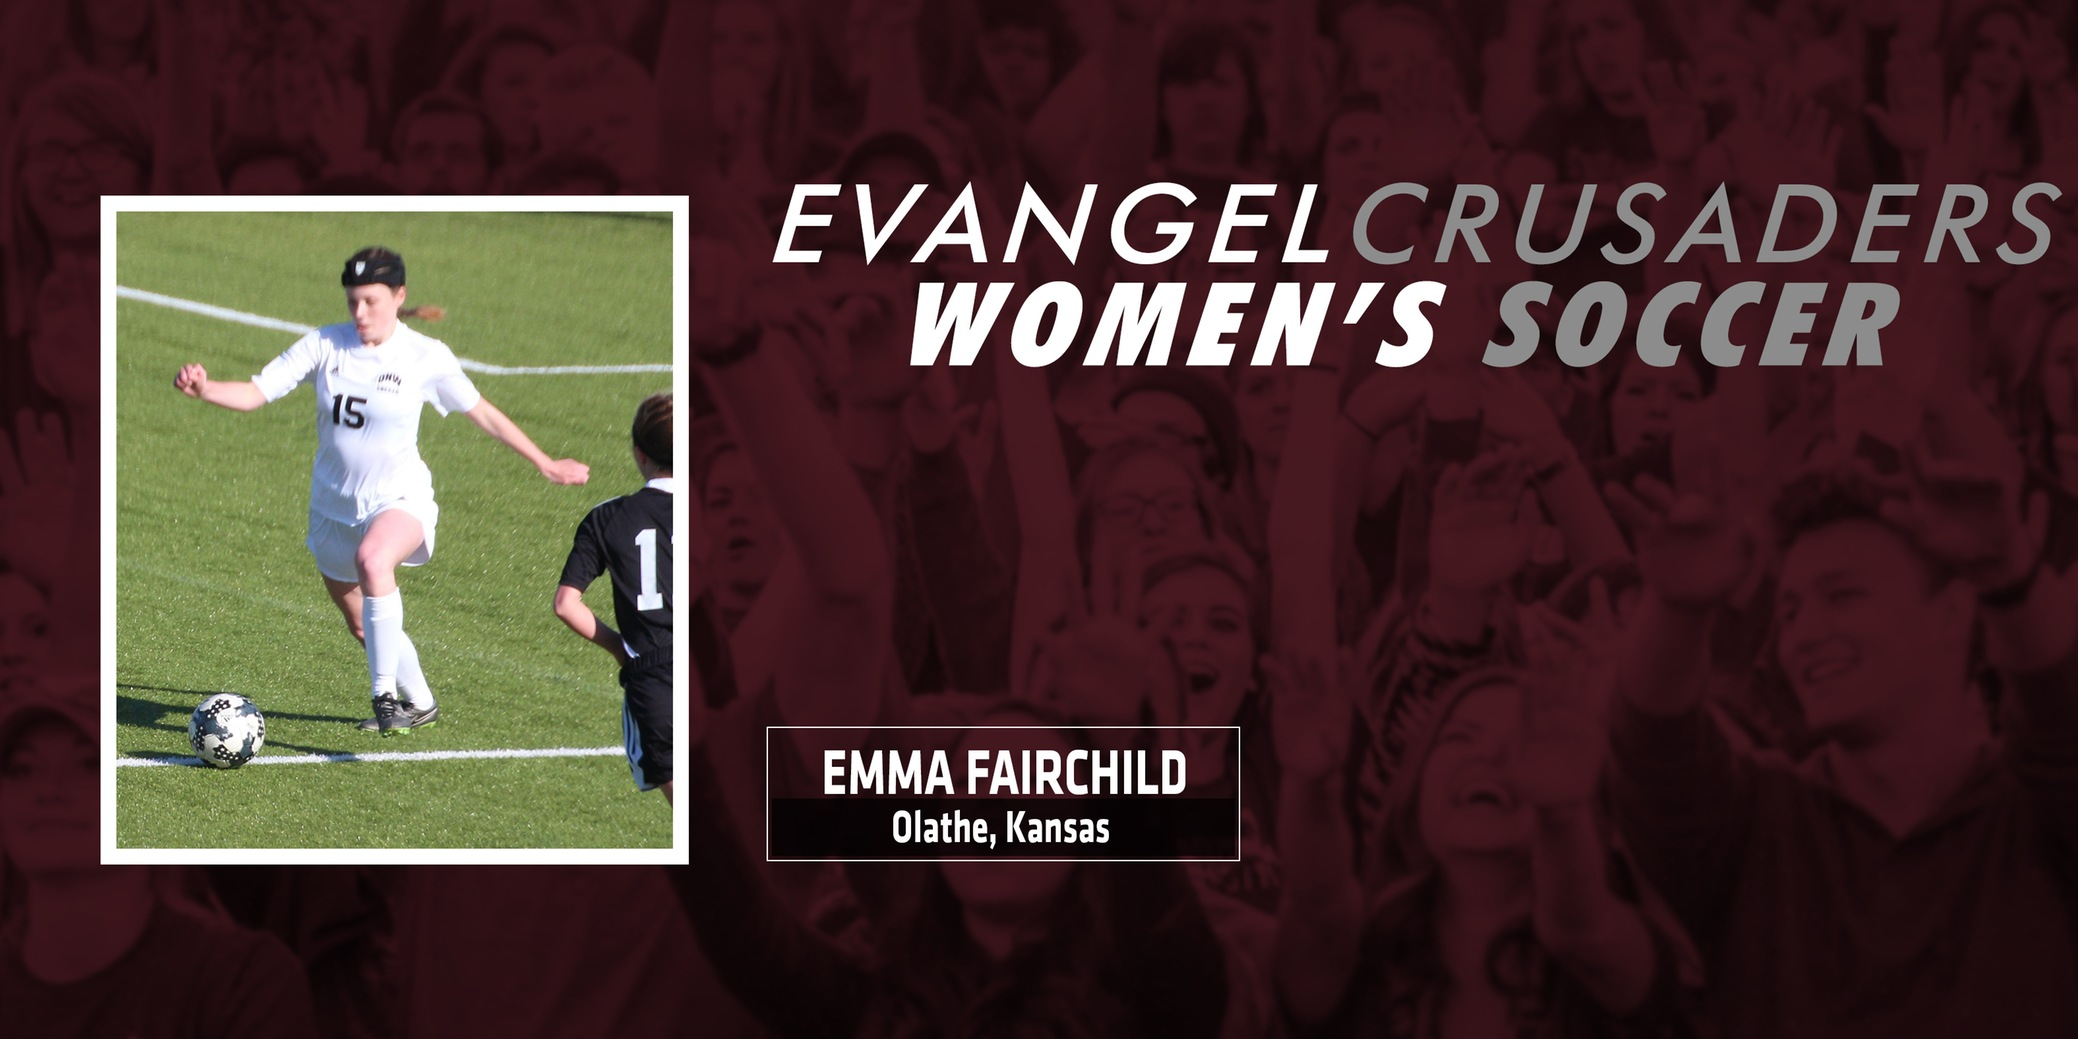 Evangel Women's Soccer Gains Commit From Emma Fairchild for 2019